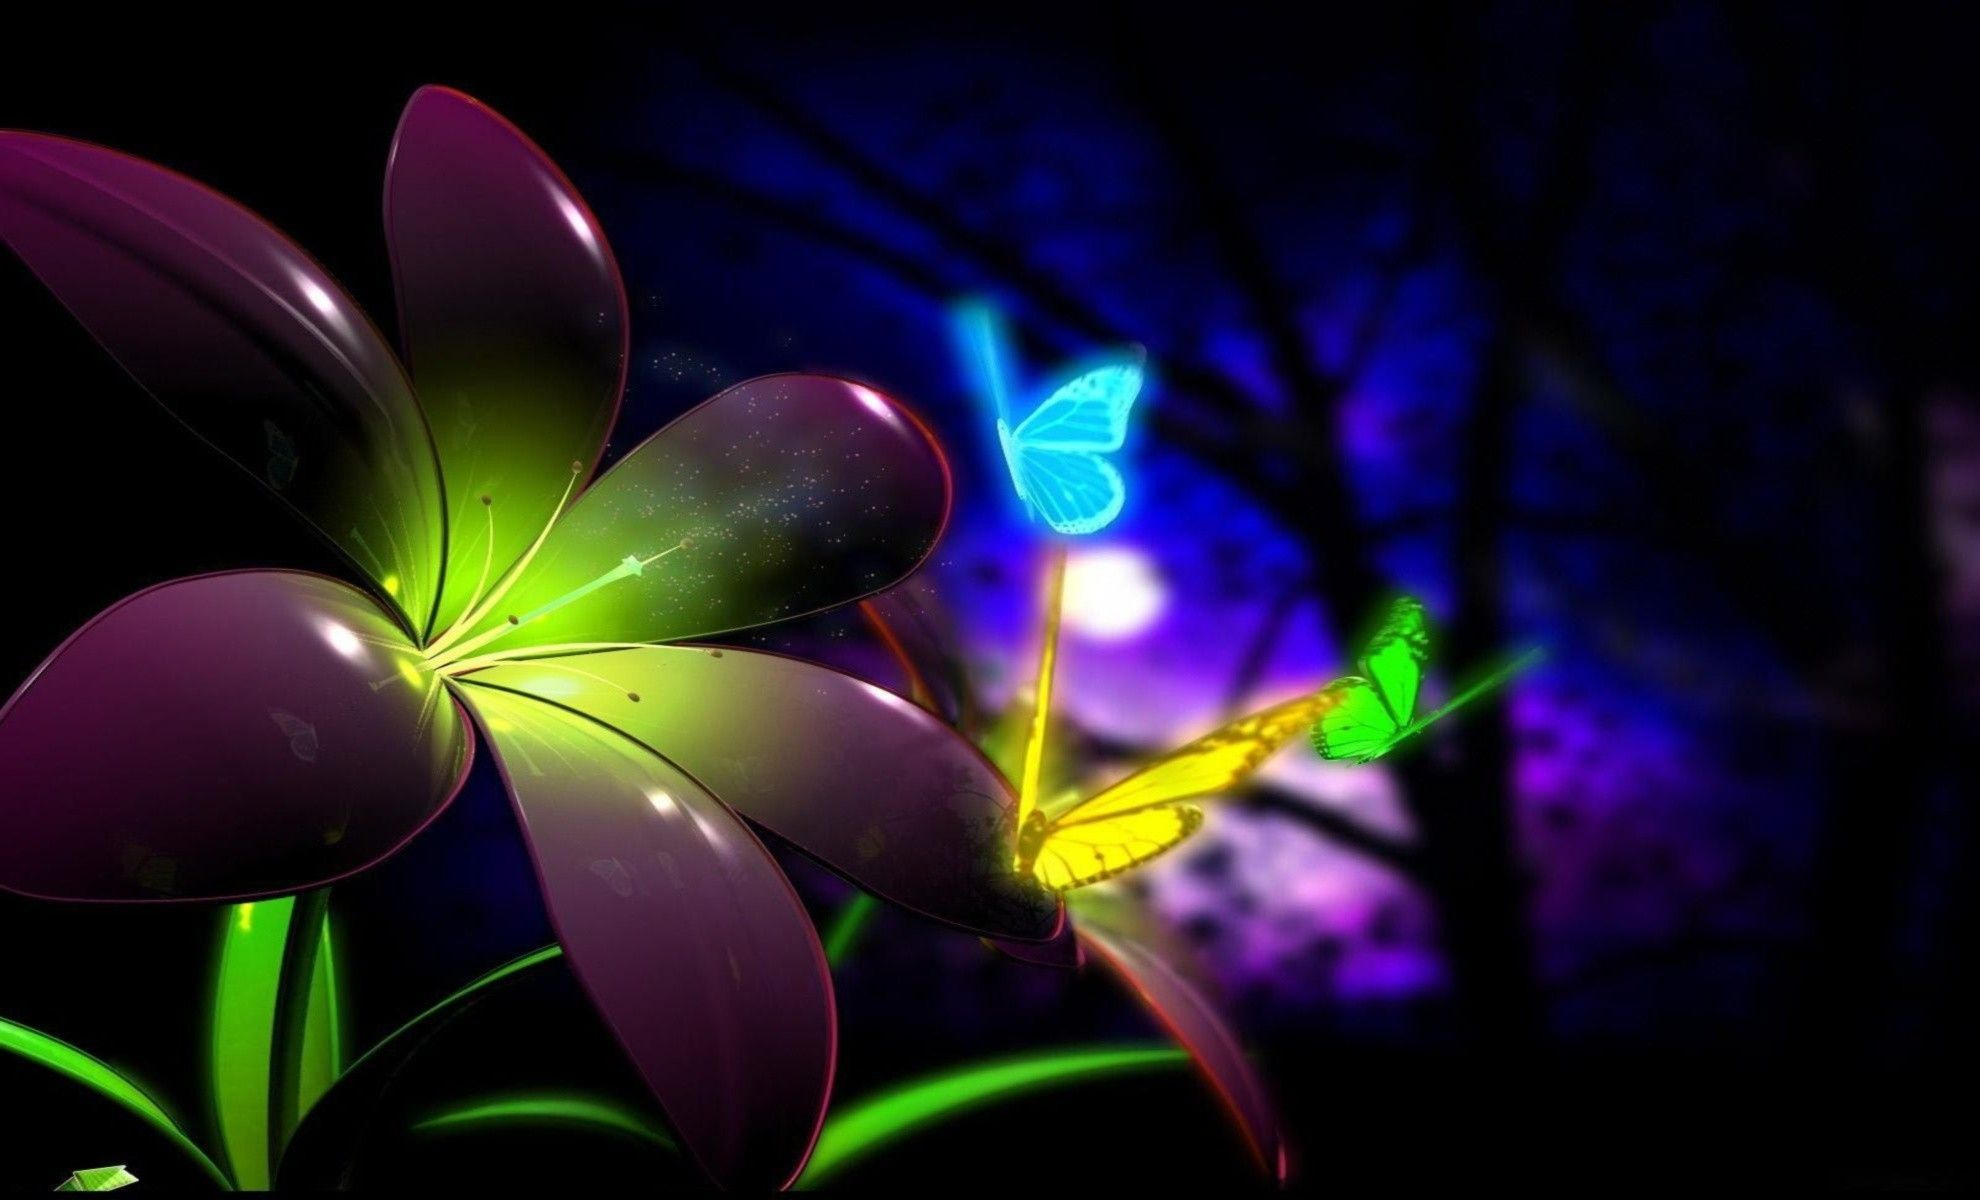 Live Wallpapers For Windows 10 54 Images 3d Wallpaper Of Flowers Background Hd Wallpaper Butterfly Wallpaper